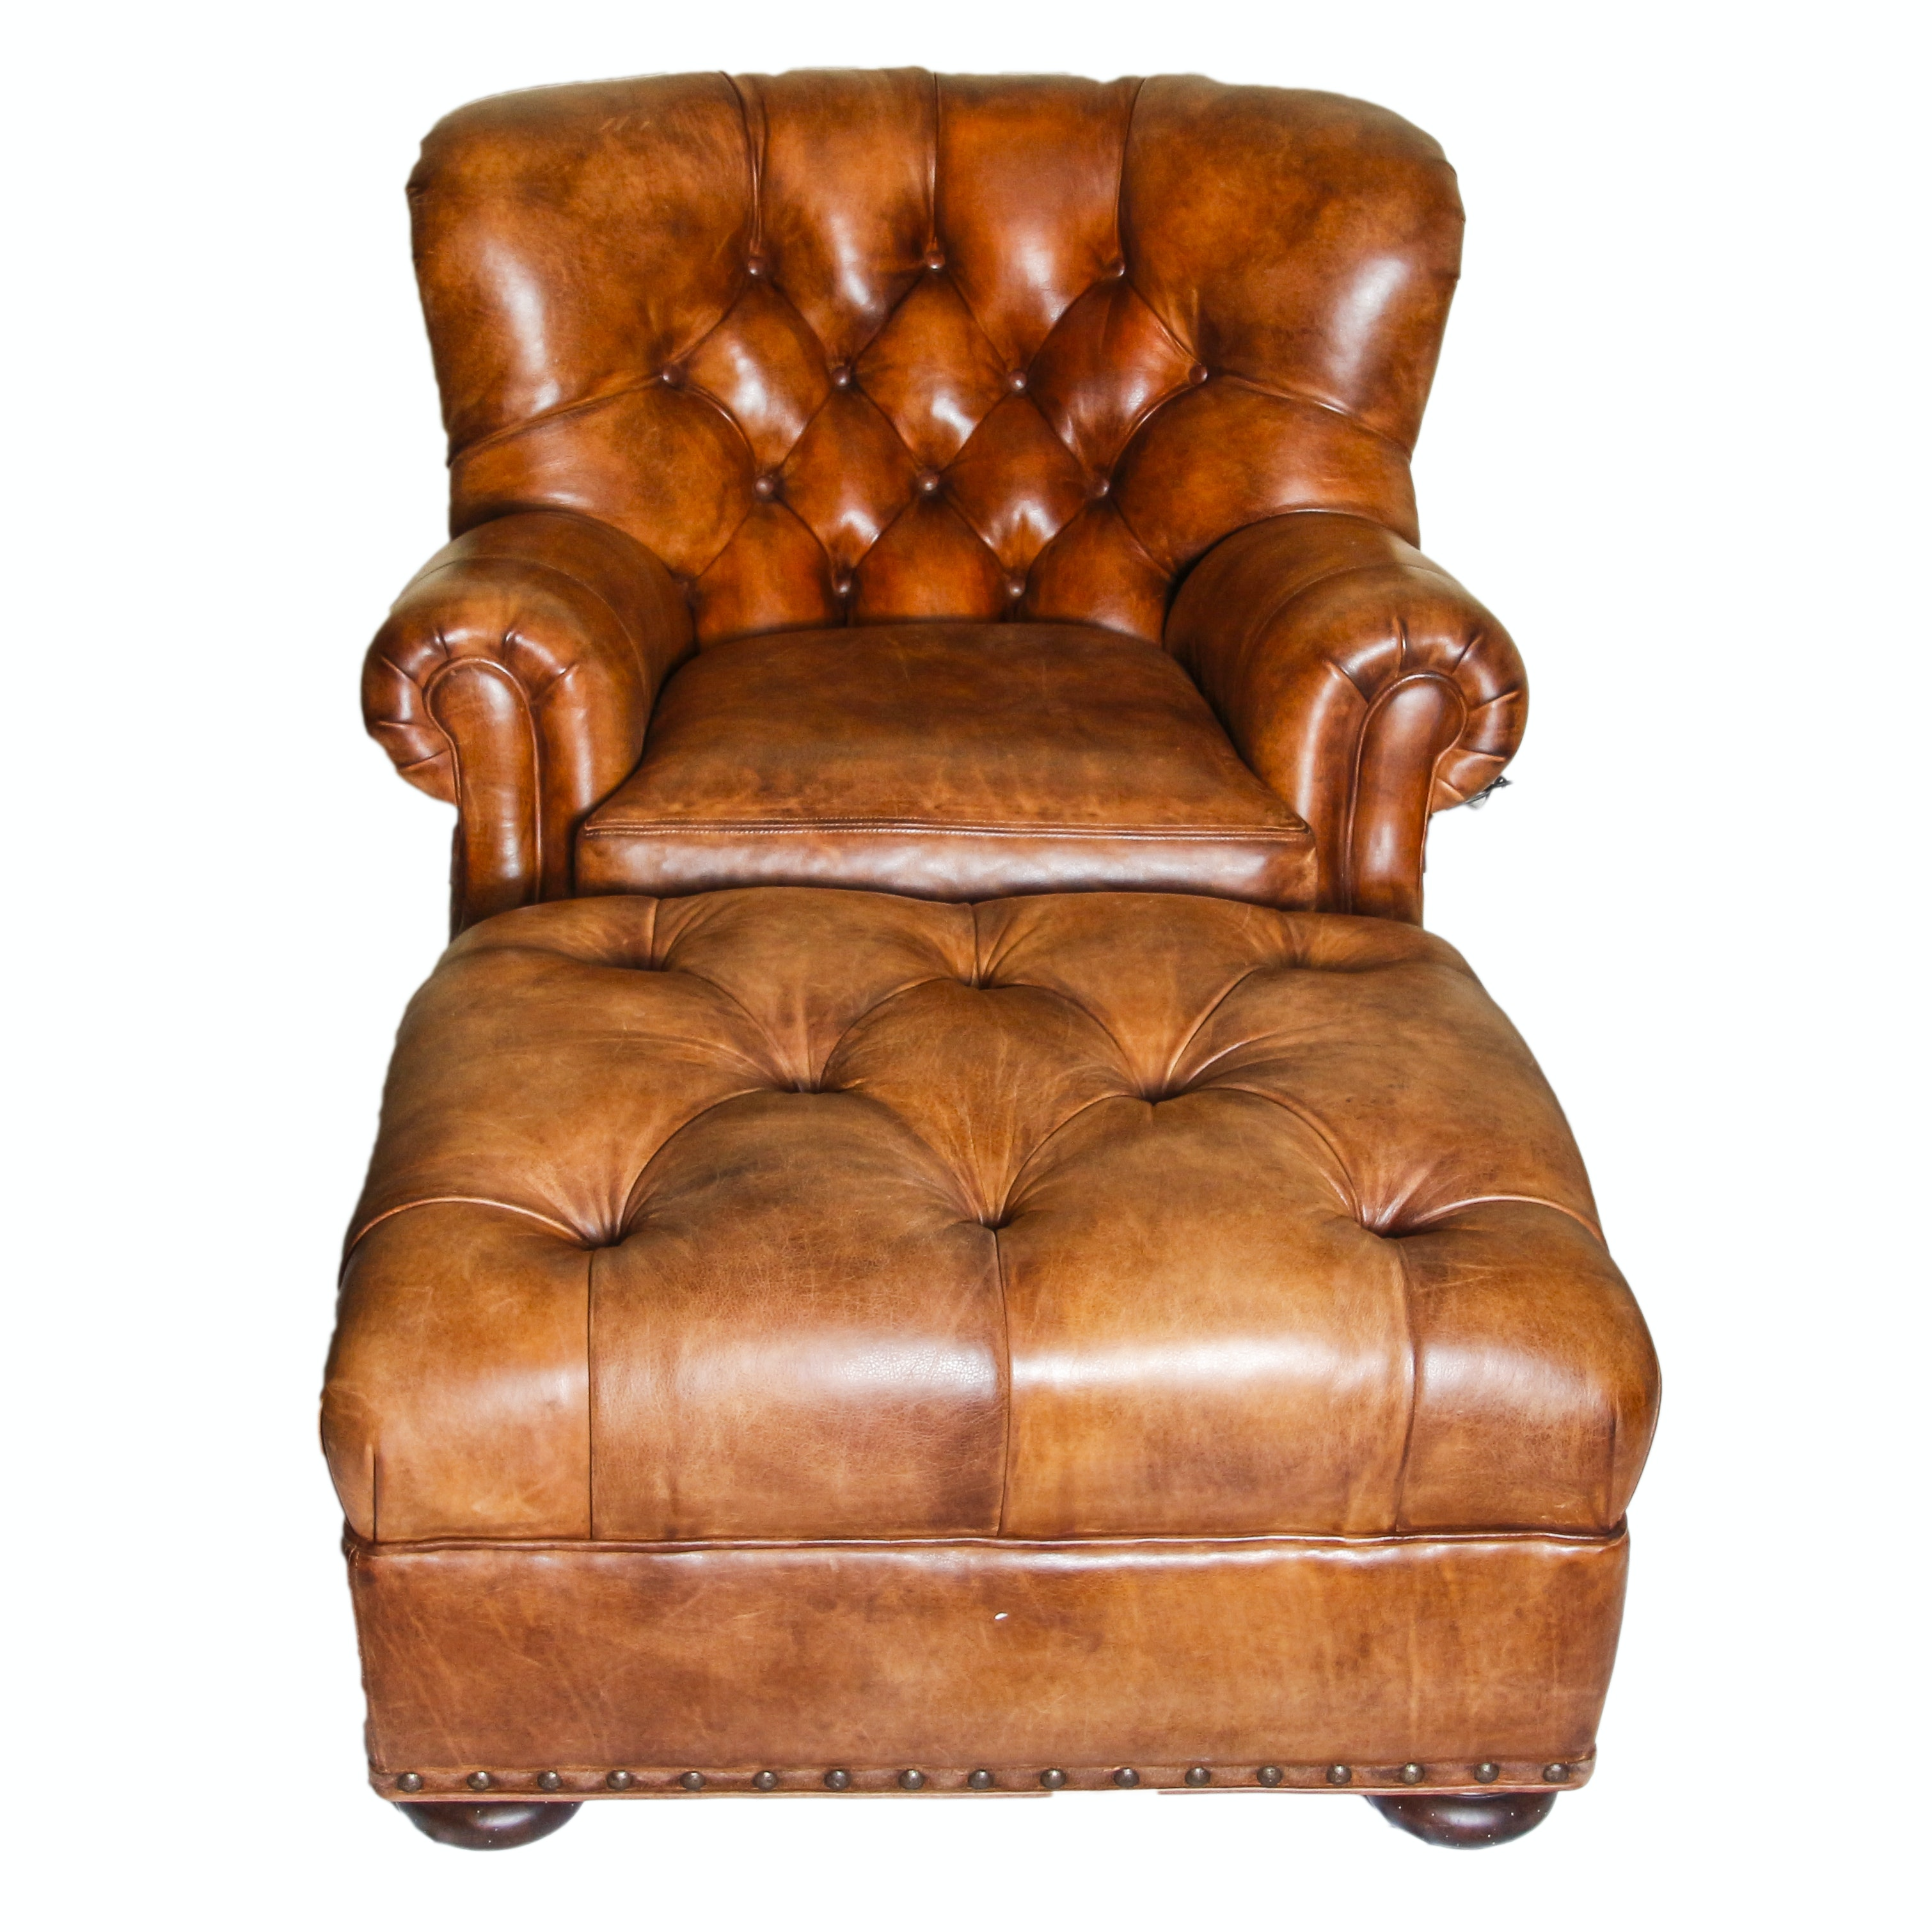 Vintage Leather Armchair and Ottoman by Hancock & Moore